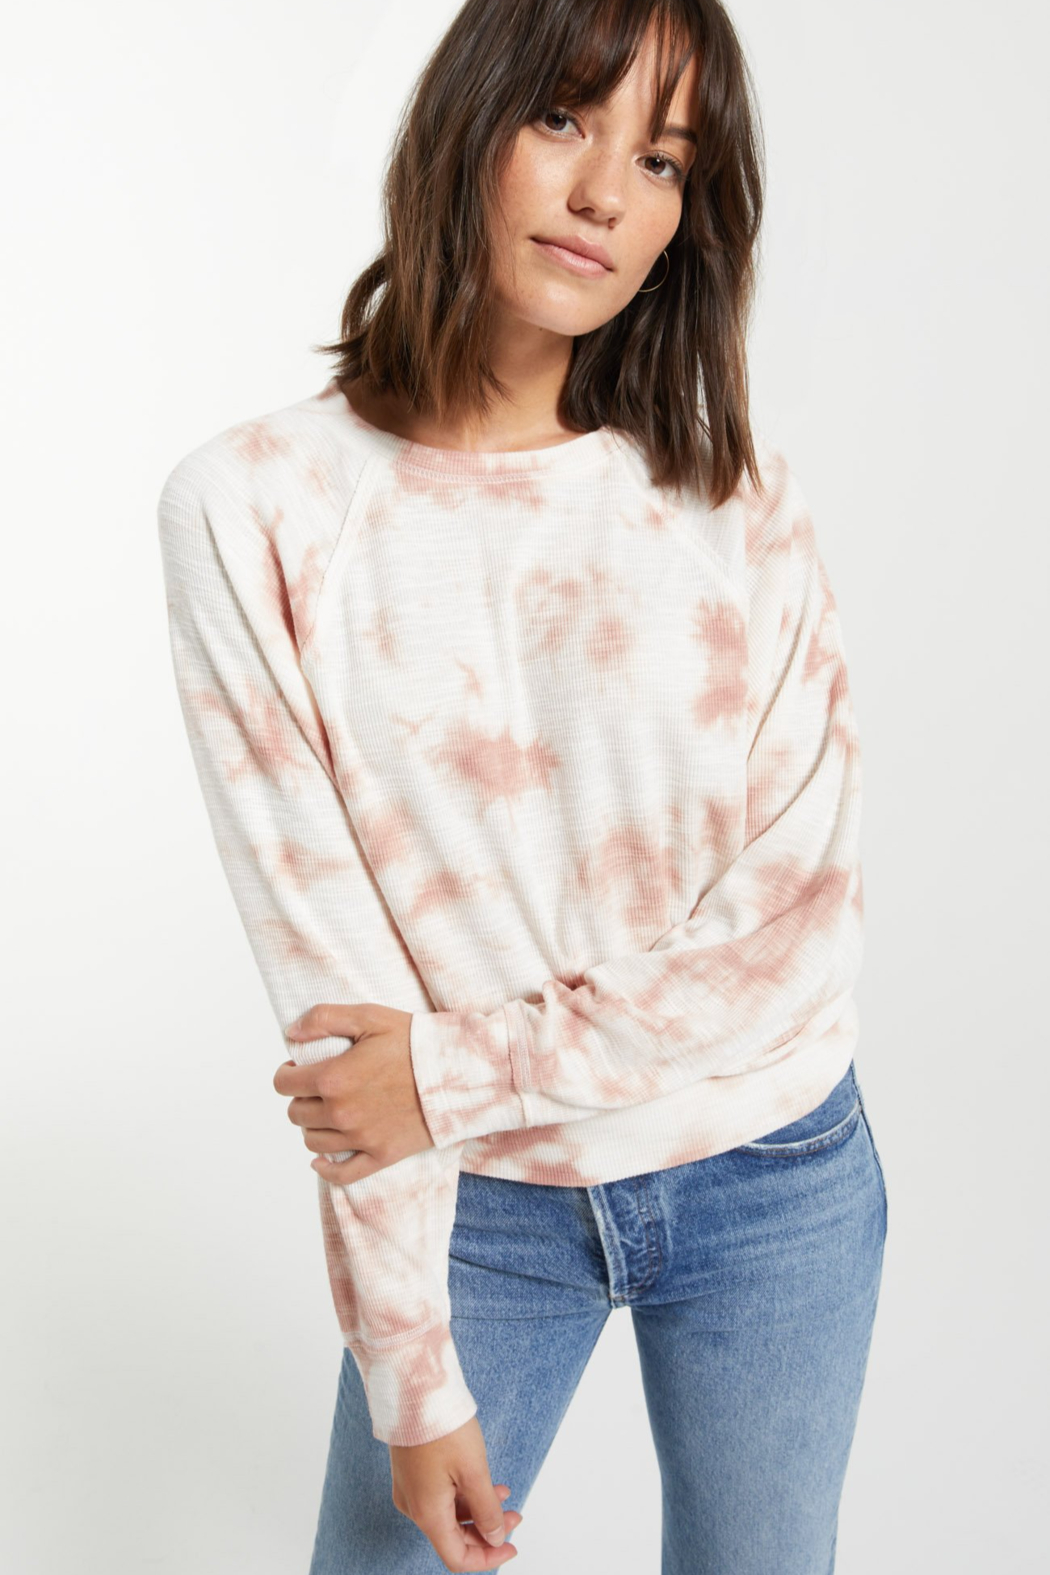 z supply Claire Cloud Tie-Dye Top - Front Full Image